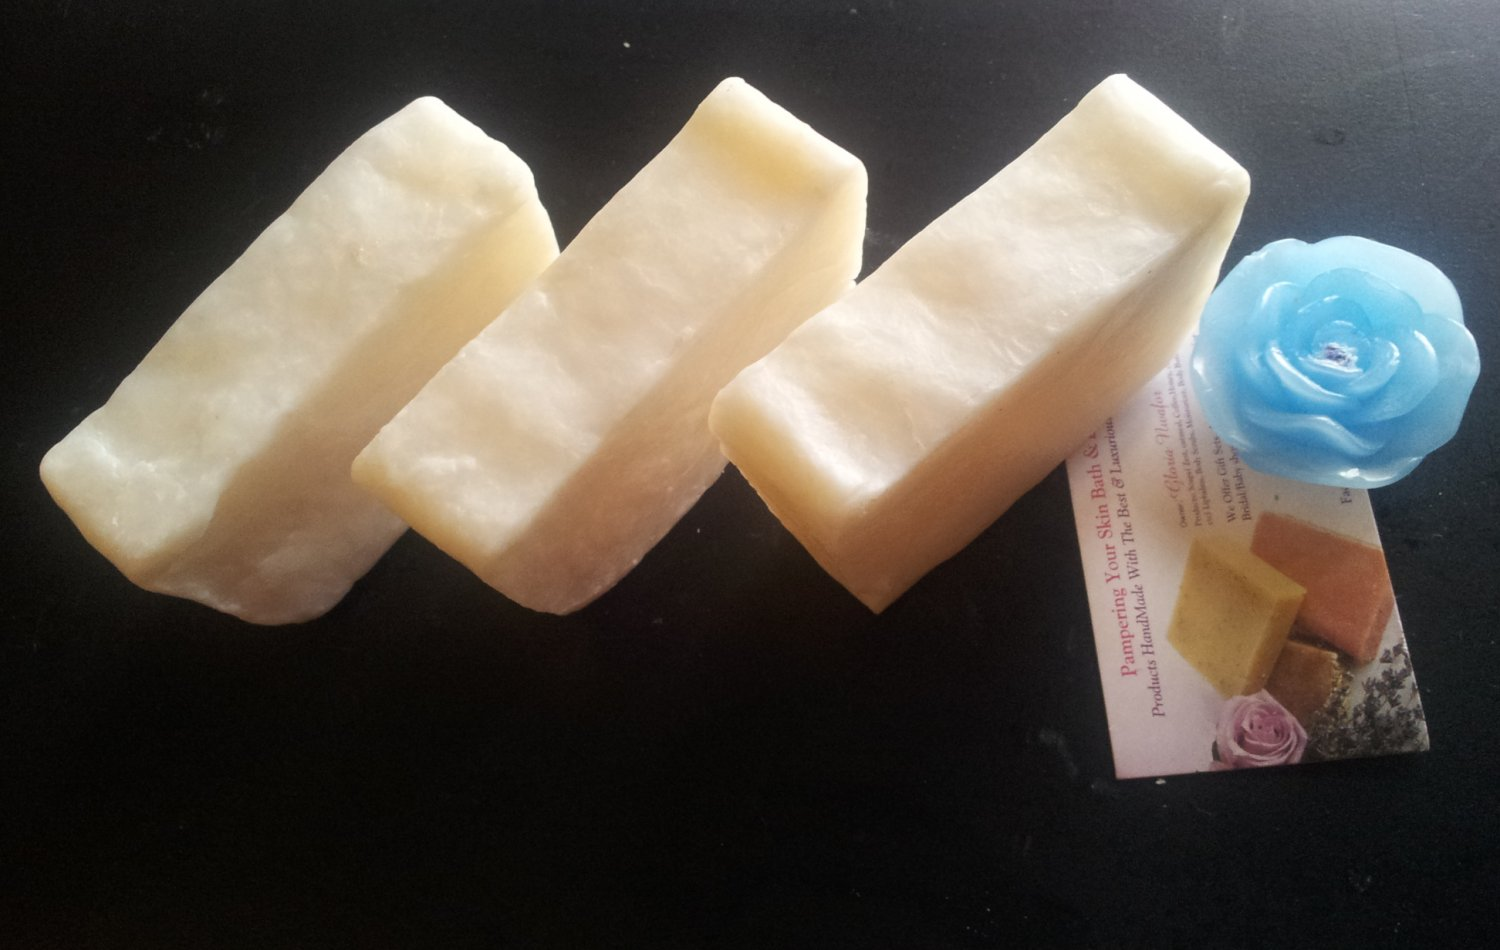 Handmade Soap -Skin Loving Homemade Hot Processed All Natural Plain Coconut Oil Soap . Mild Scent